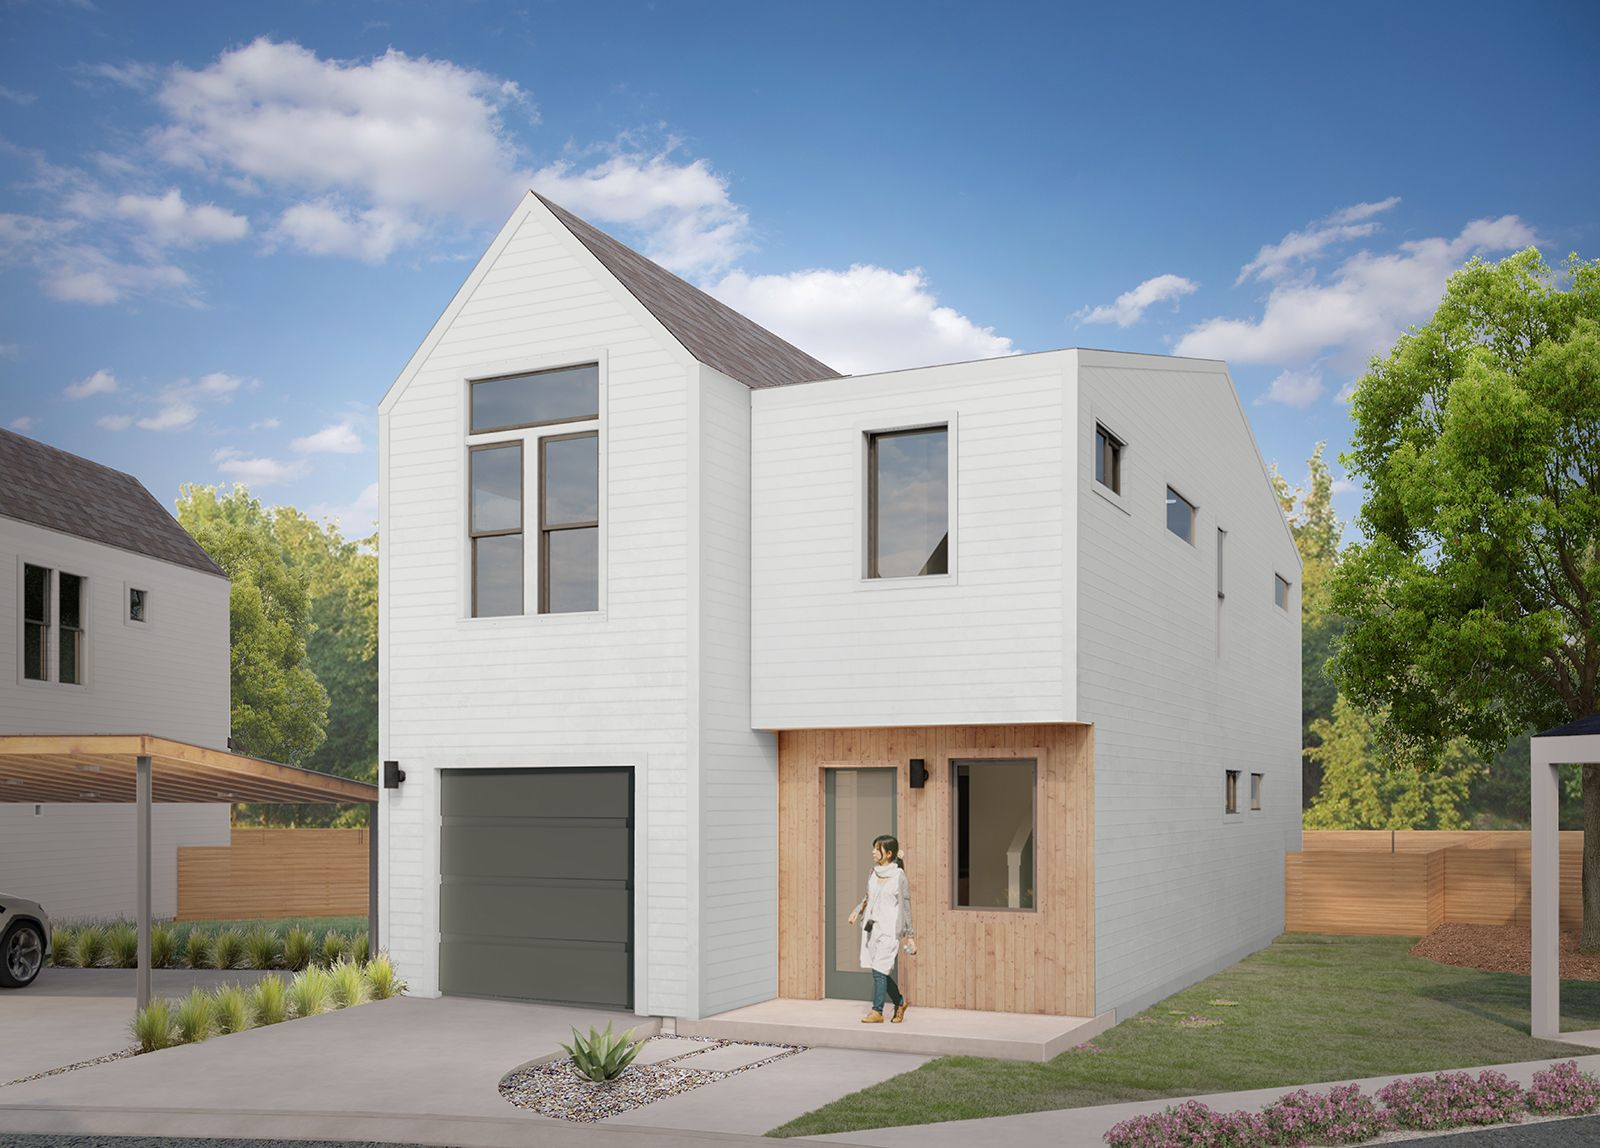 Clementine. Exterior Rendering:Plan A